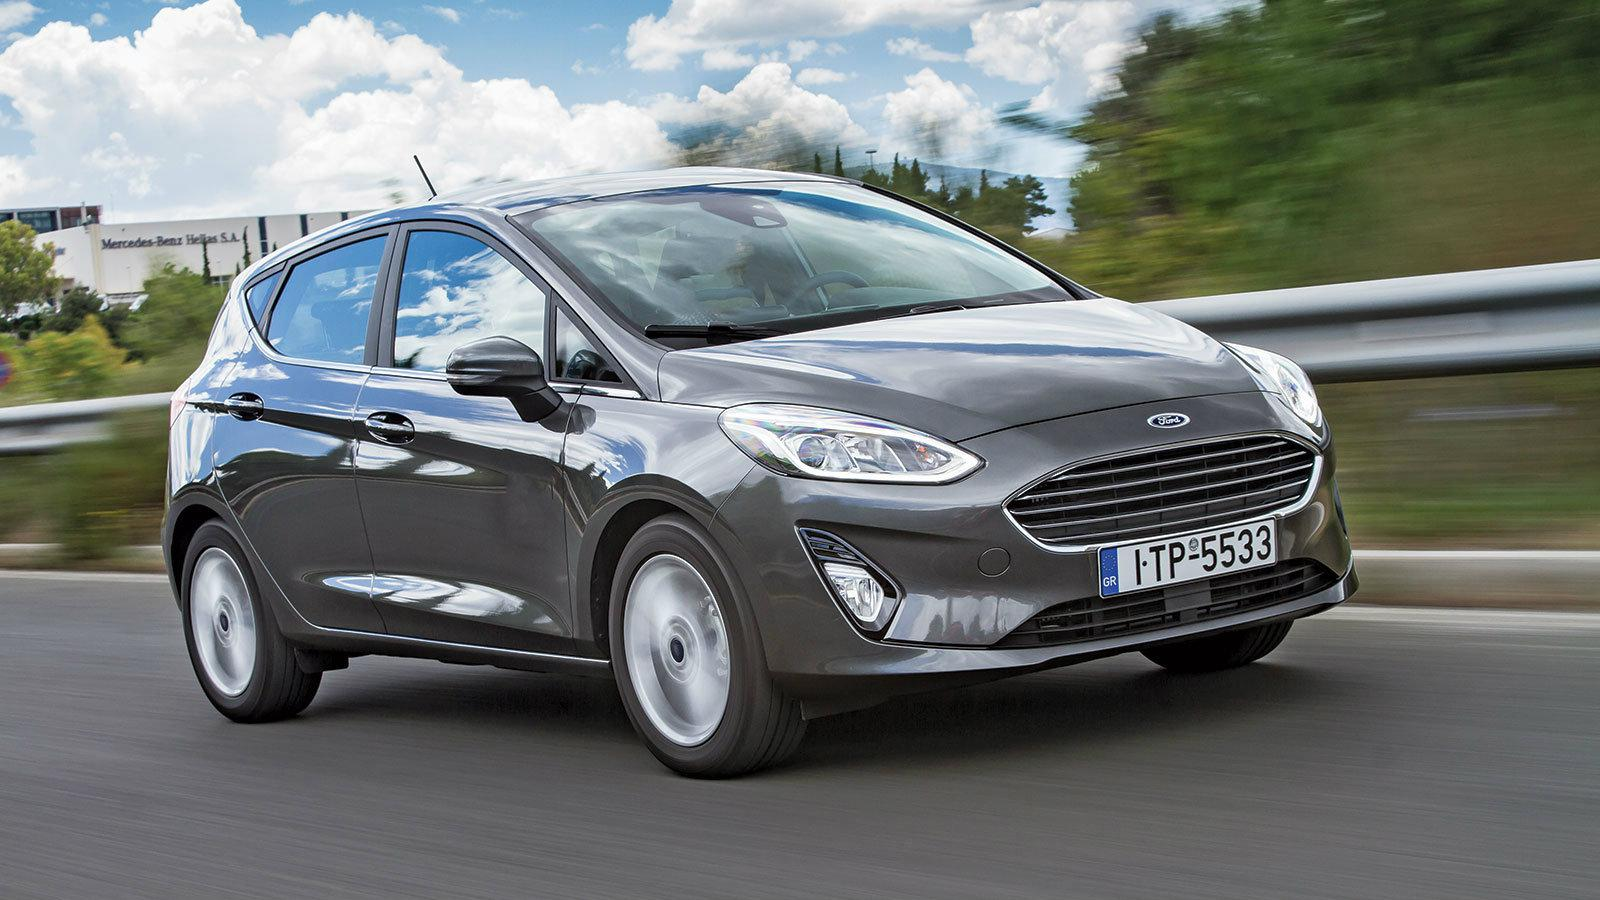 ford fiesta 1 0 ecoboost 100 ps ford ford fiesta. Black Bedroom Furniture Sets. Home Design Ideas